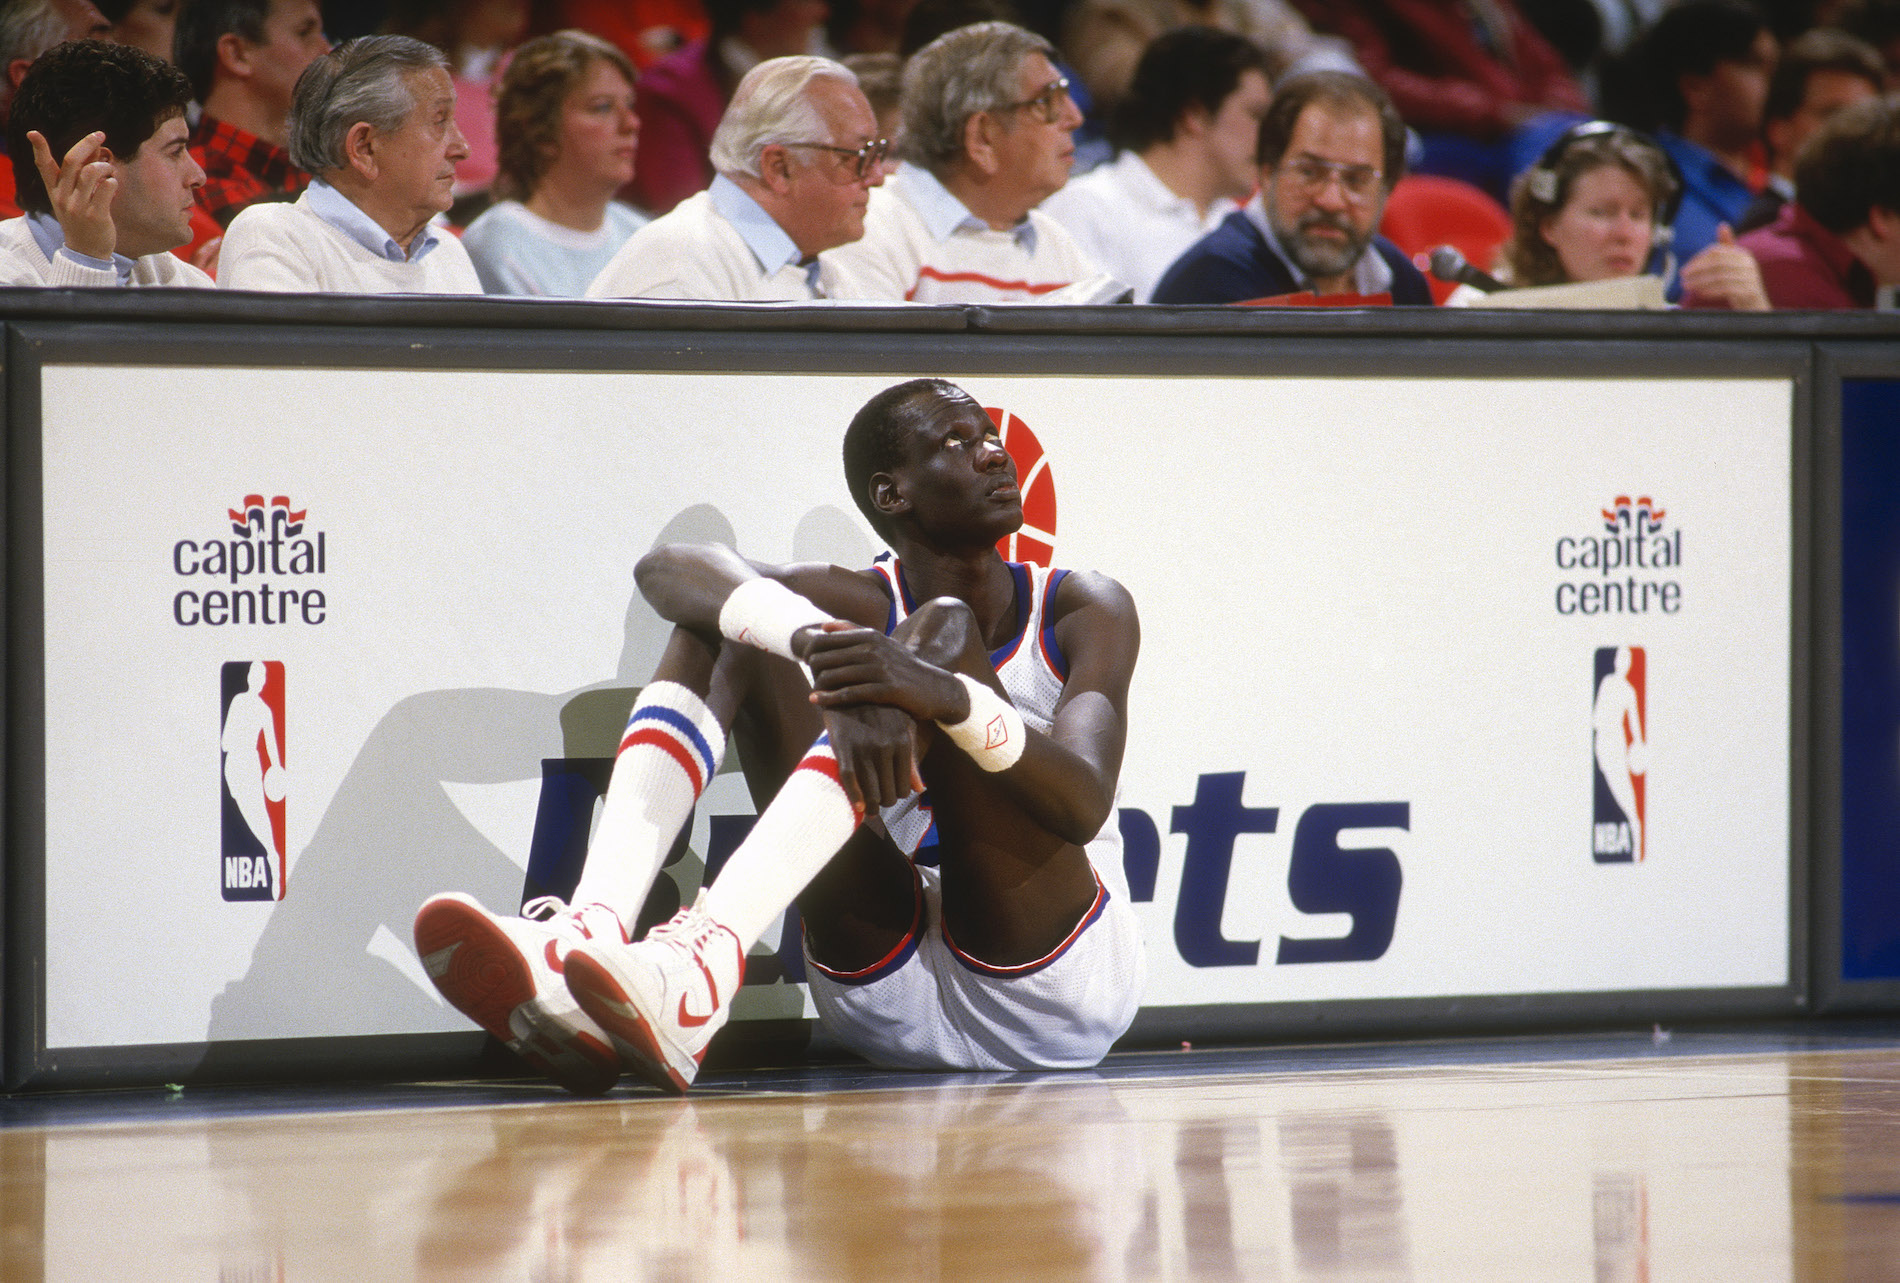 Manute Bol was one of the most unique talents to ever grace the floor in the NBA, and his tragic death in 2010 saddened the basketball world.